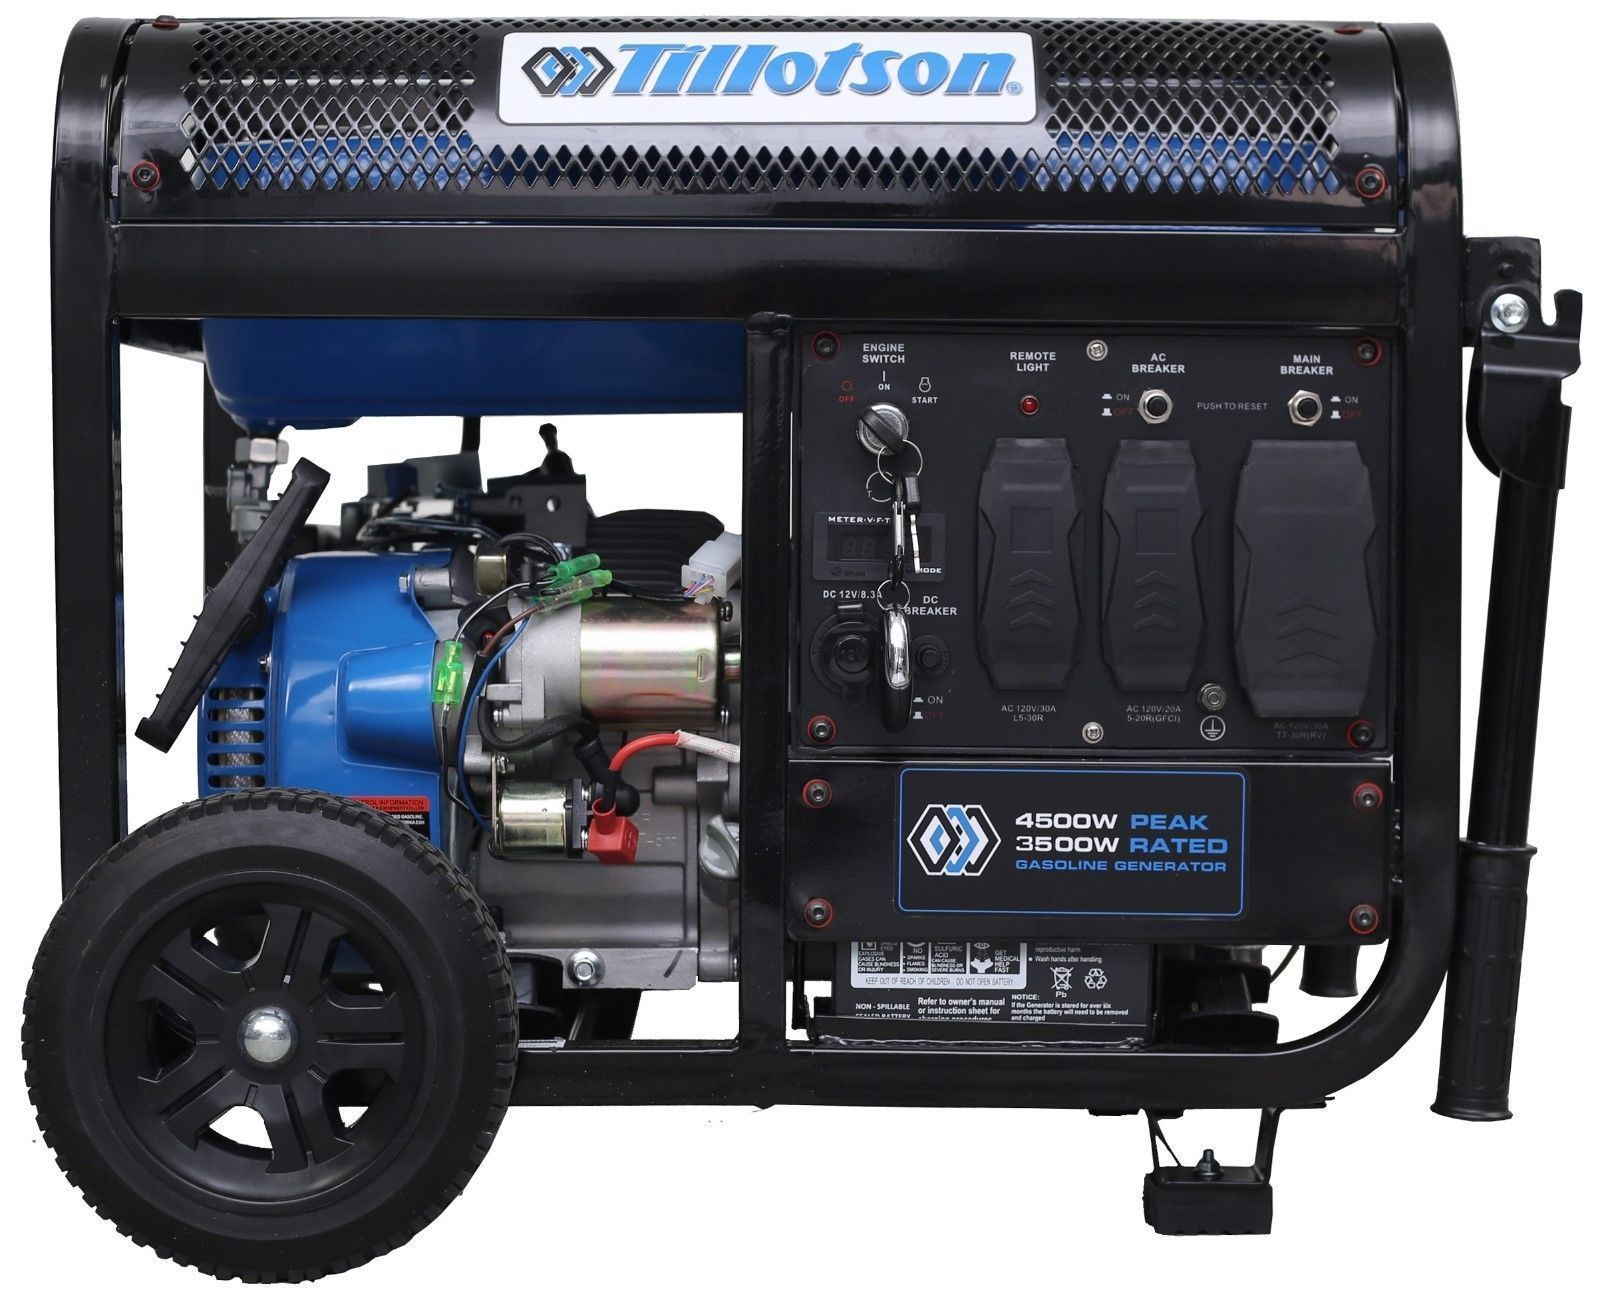 small resolution of tillotson generator 4500 gasoline operated with remote control